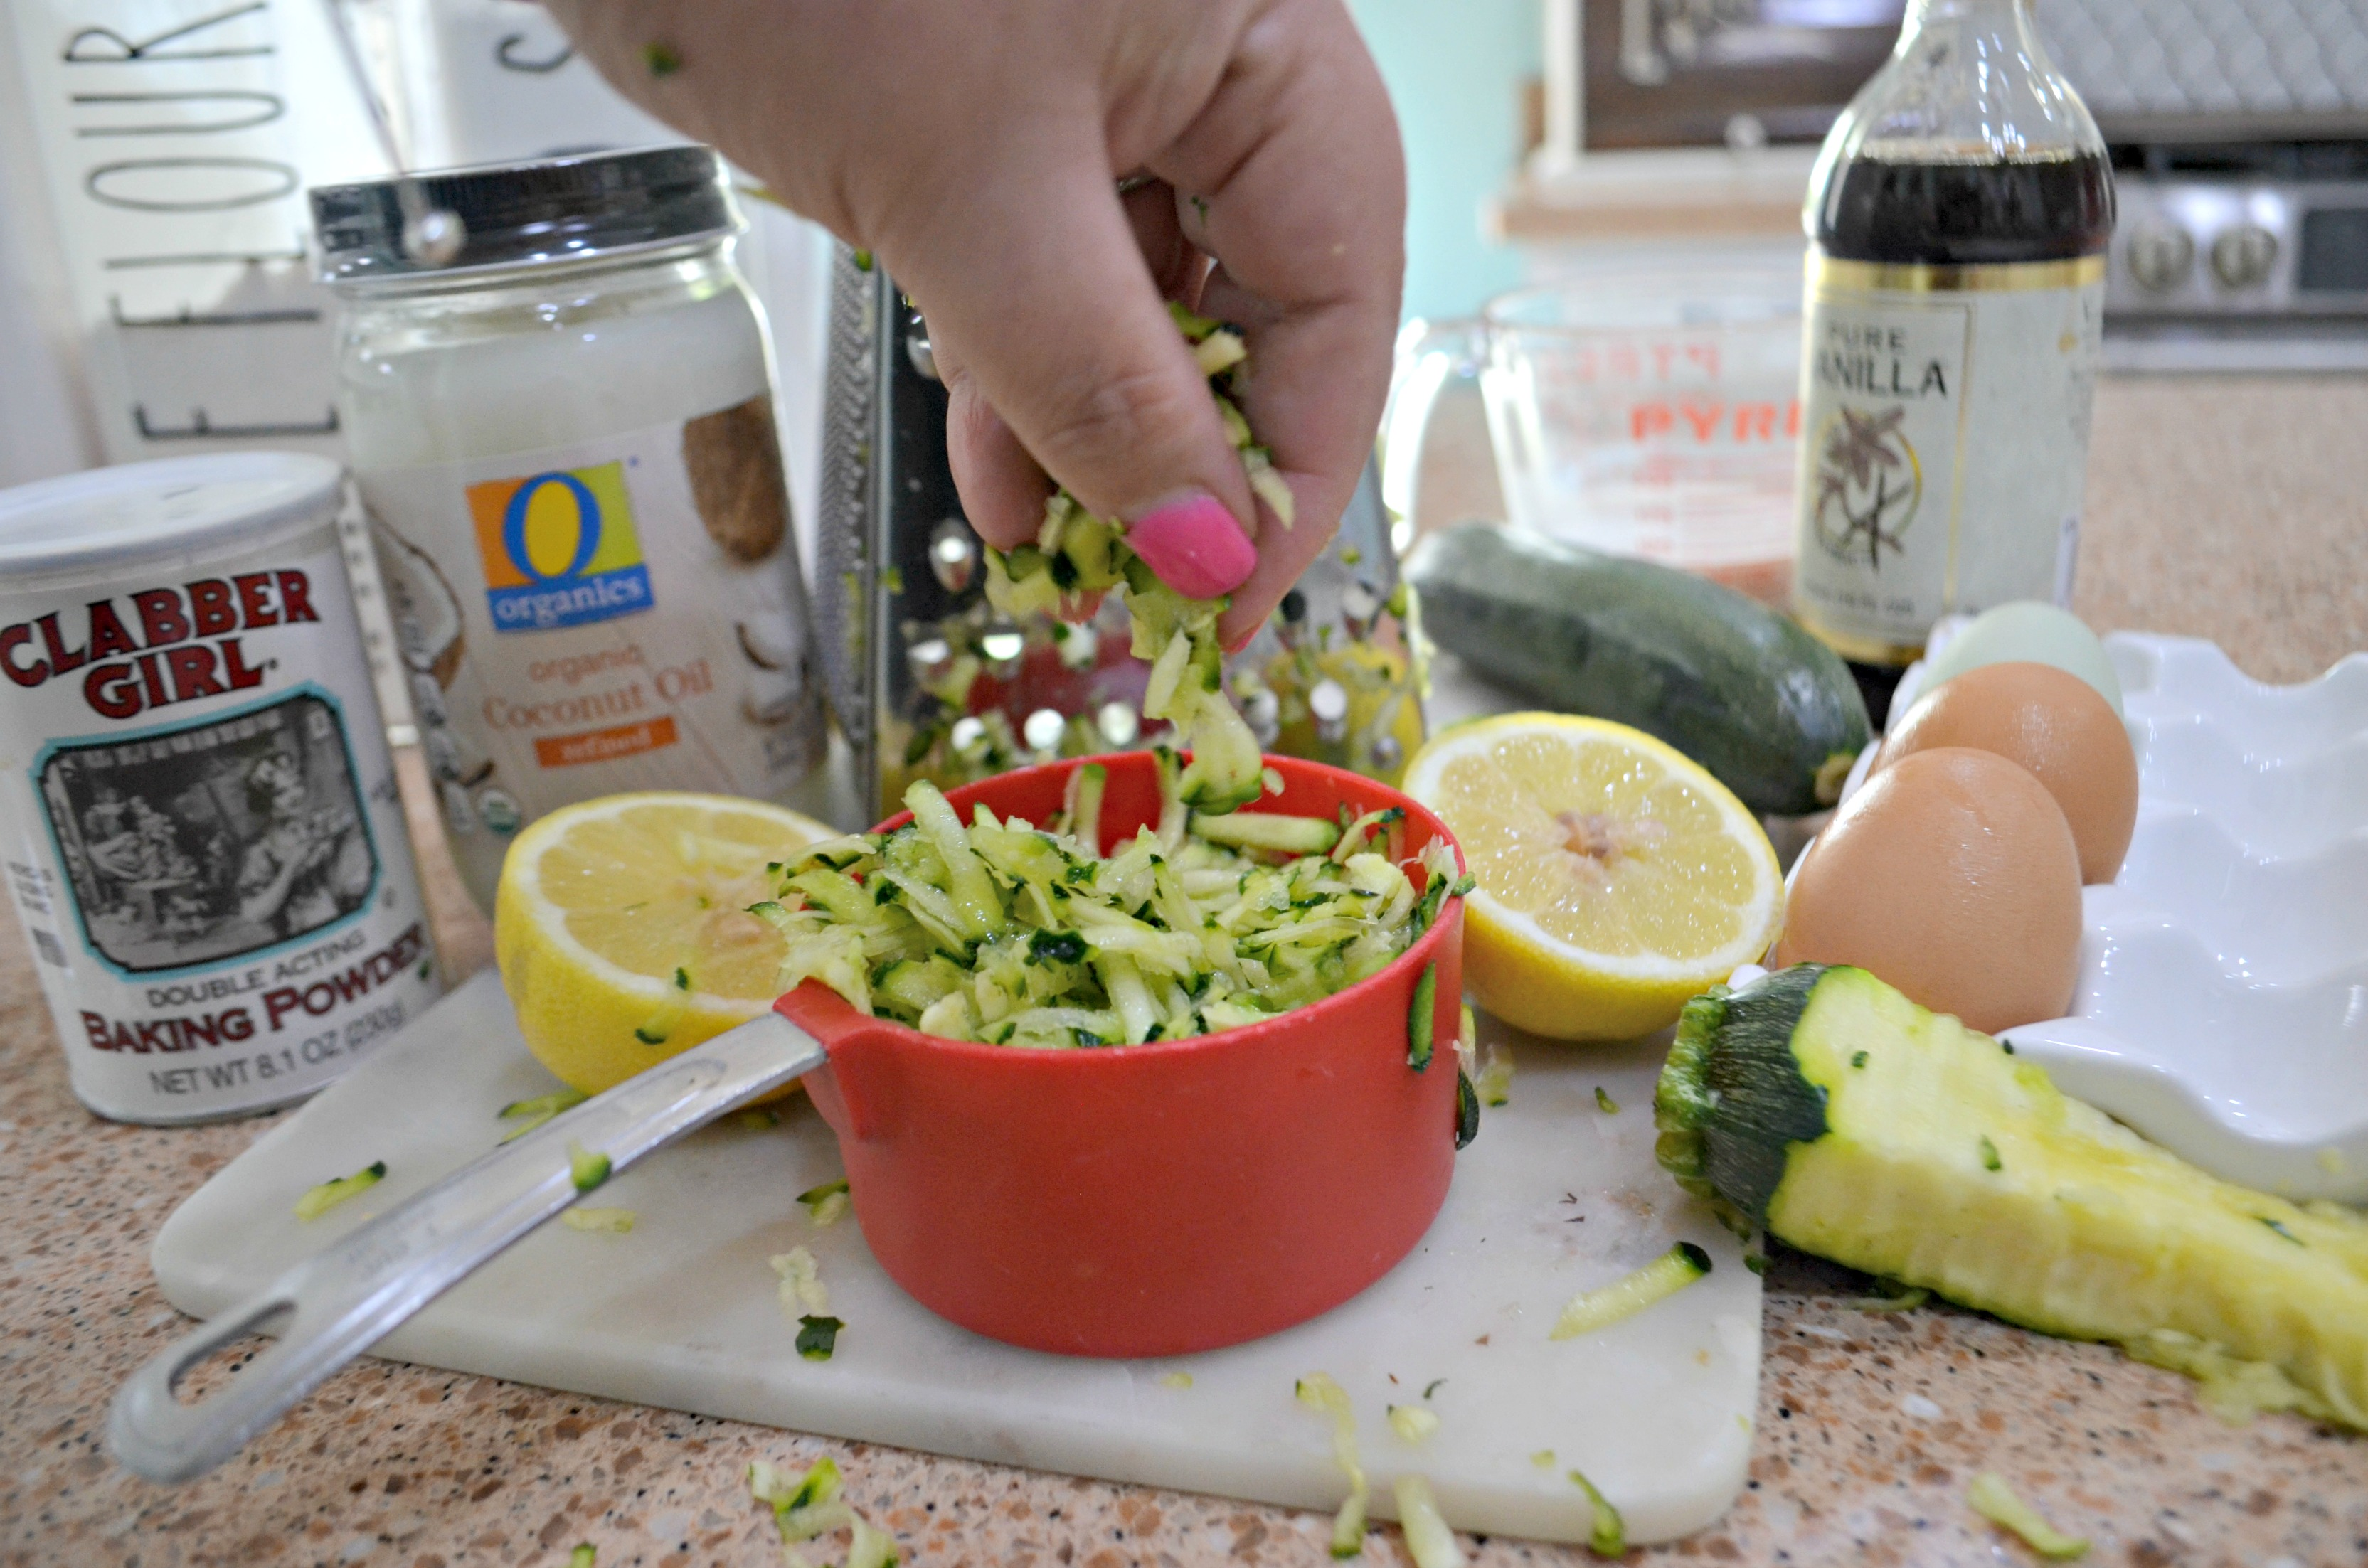 Ingredients for the baked lemon zucchini loaf